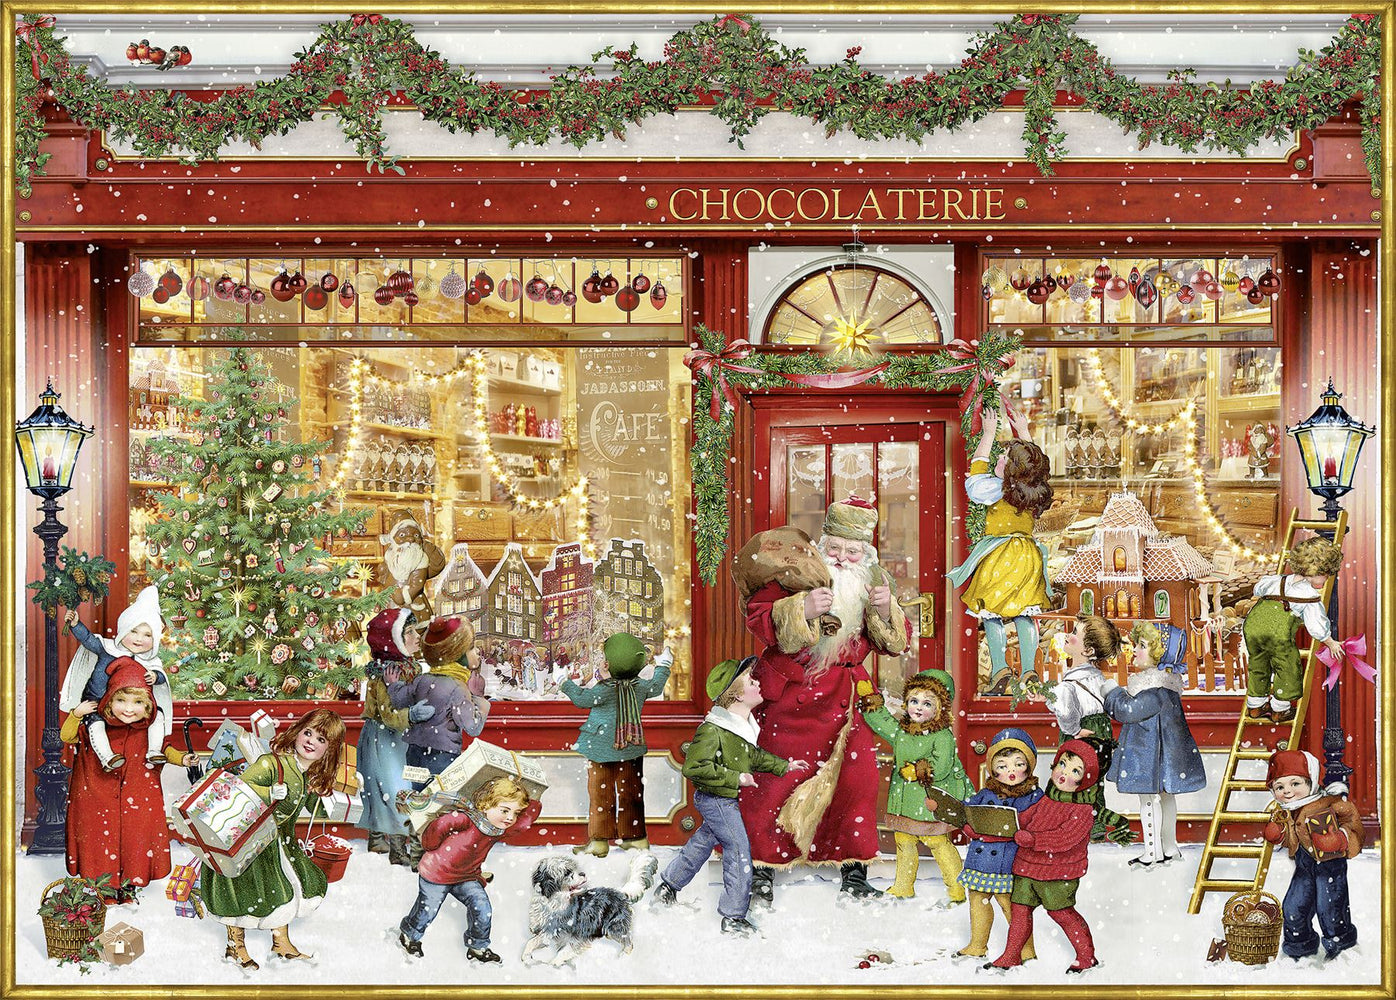 The Chocolate Shop - Coppenrath 1000 Piece Jigsaw Puzzle